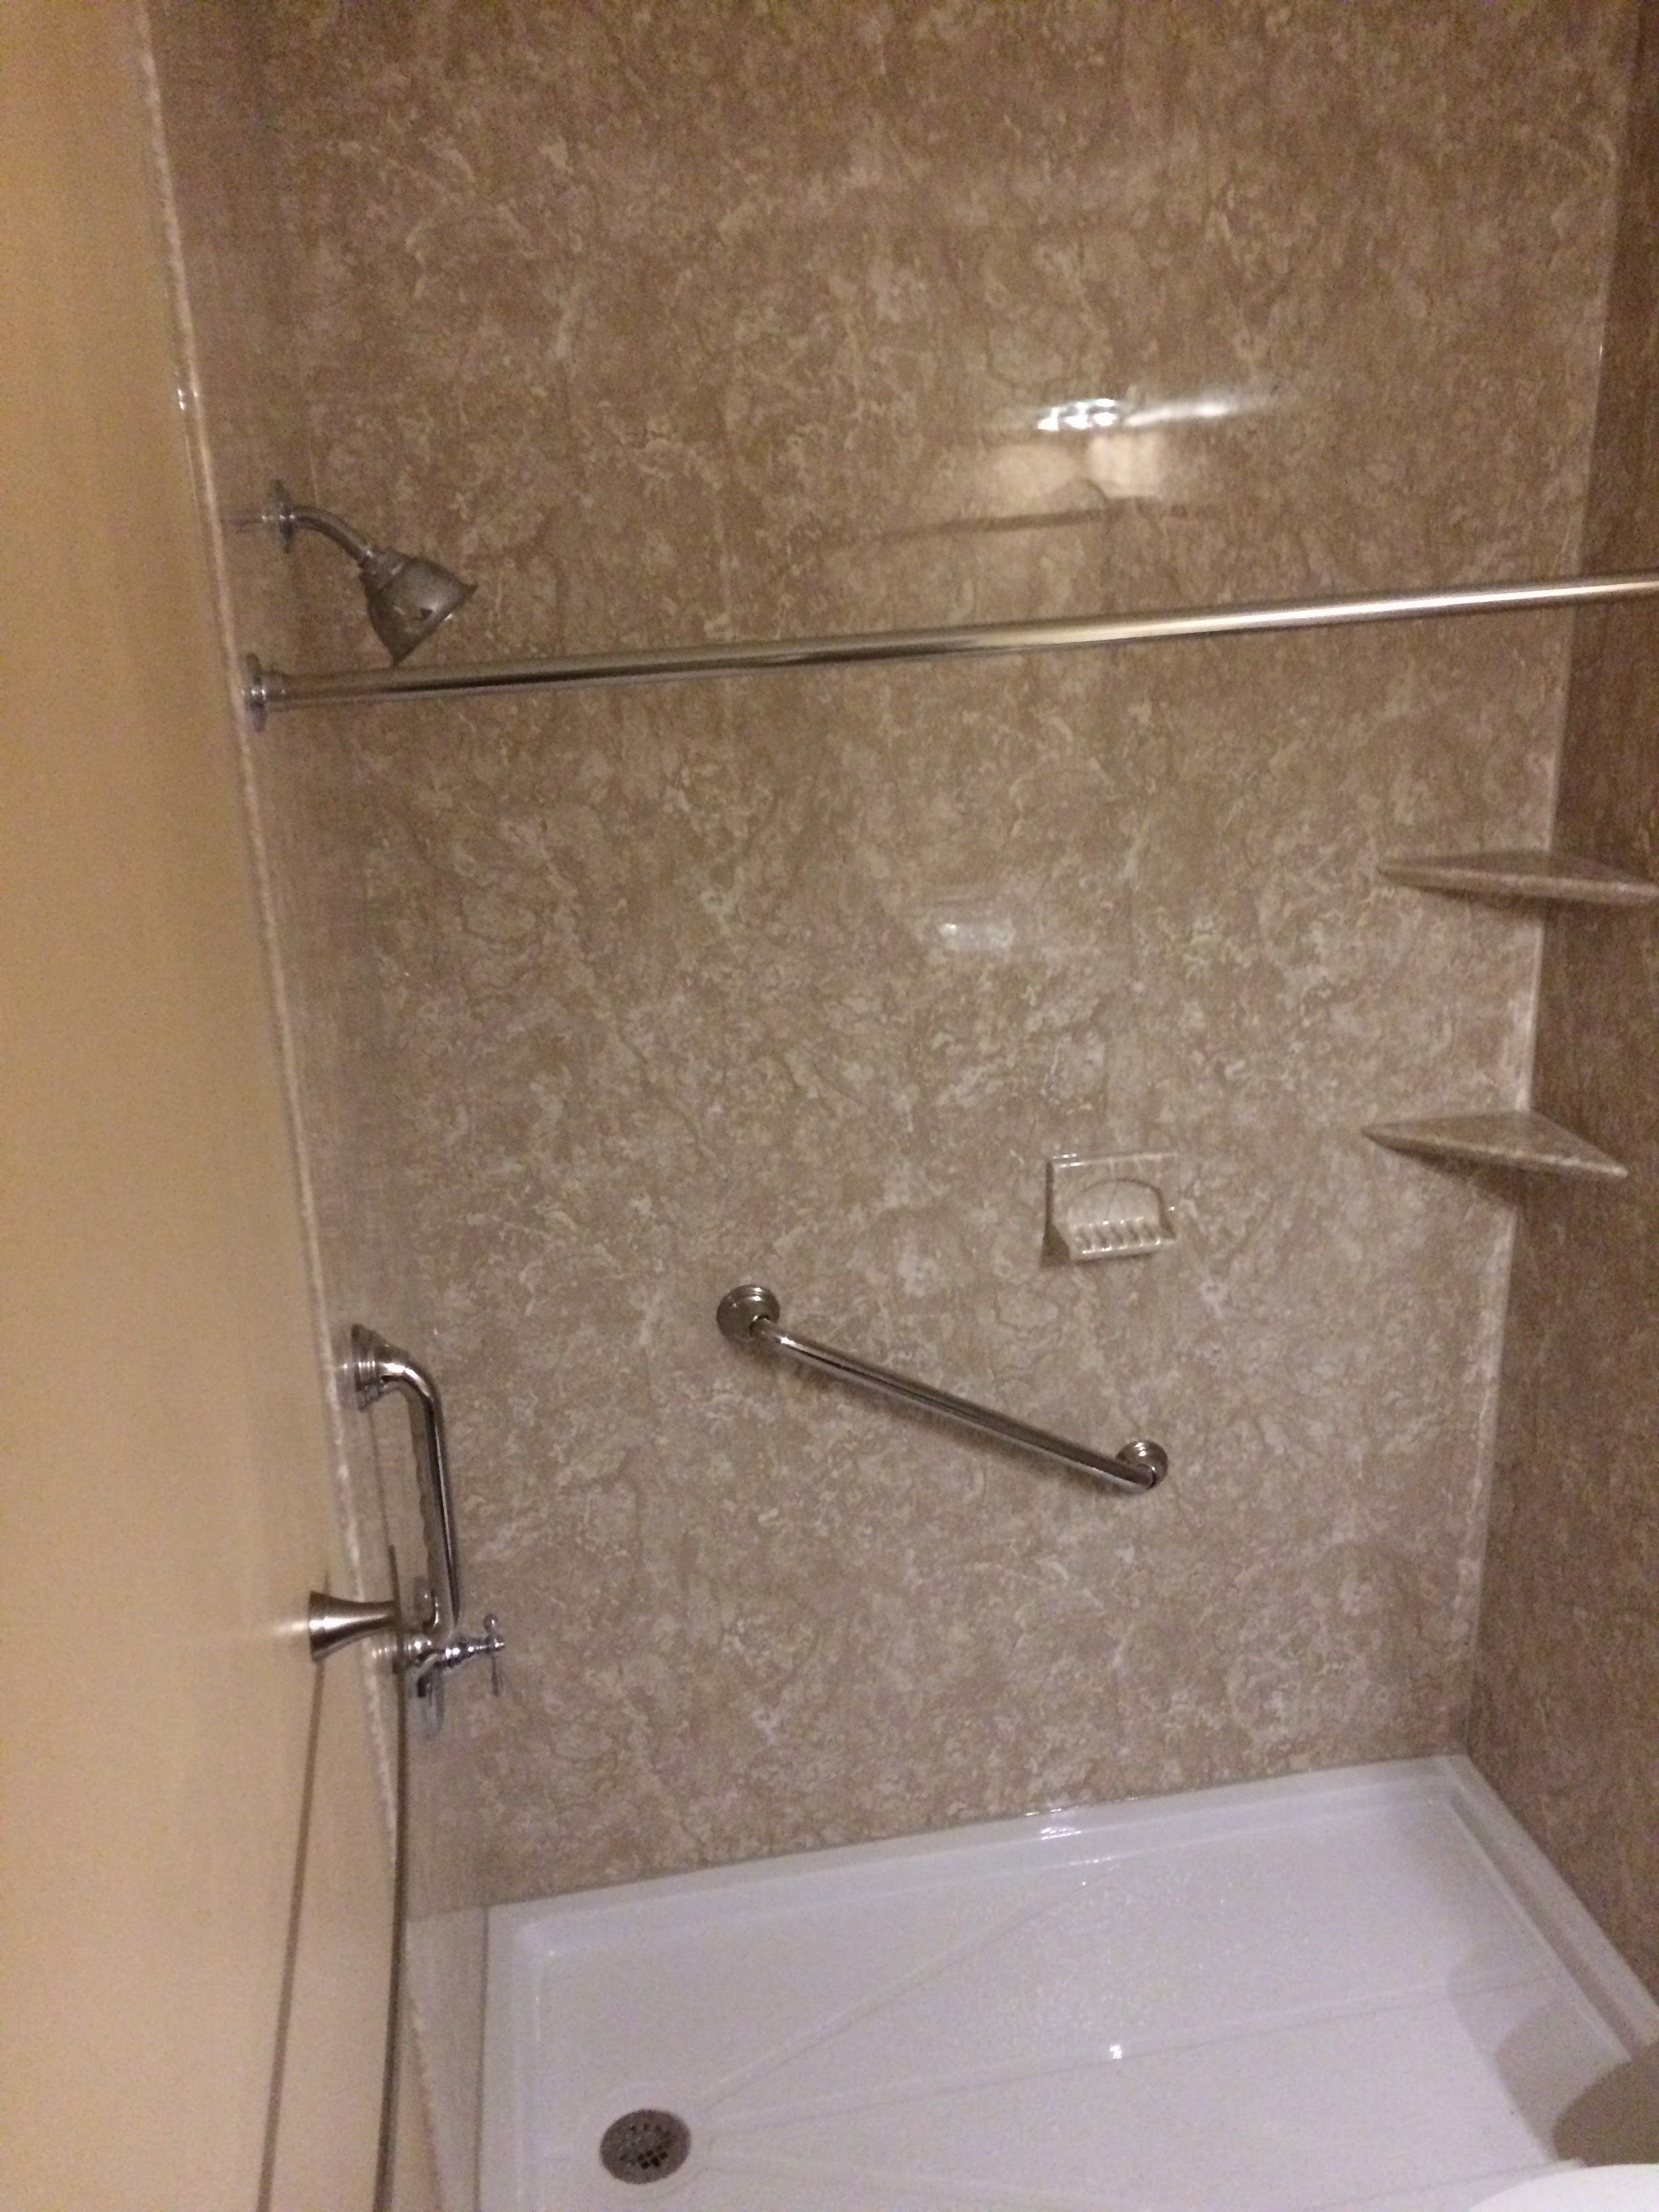 Tub To Shower Remodel South River Nj Small Shower Remodel Tub To Shower Remodel Bathtub Shower Remodel